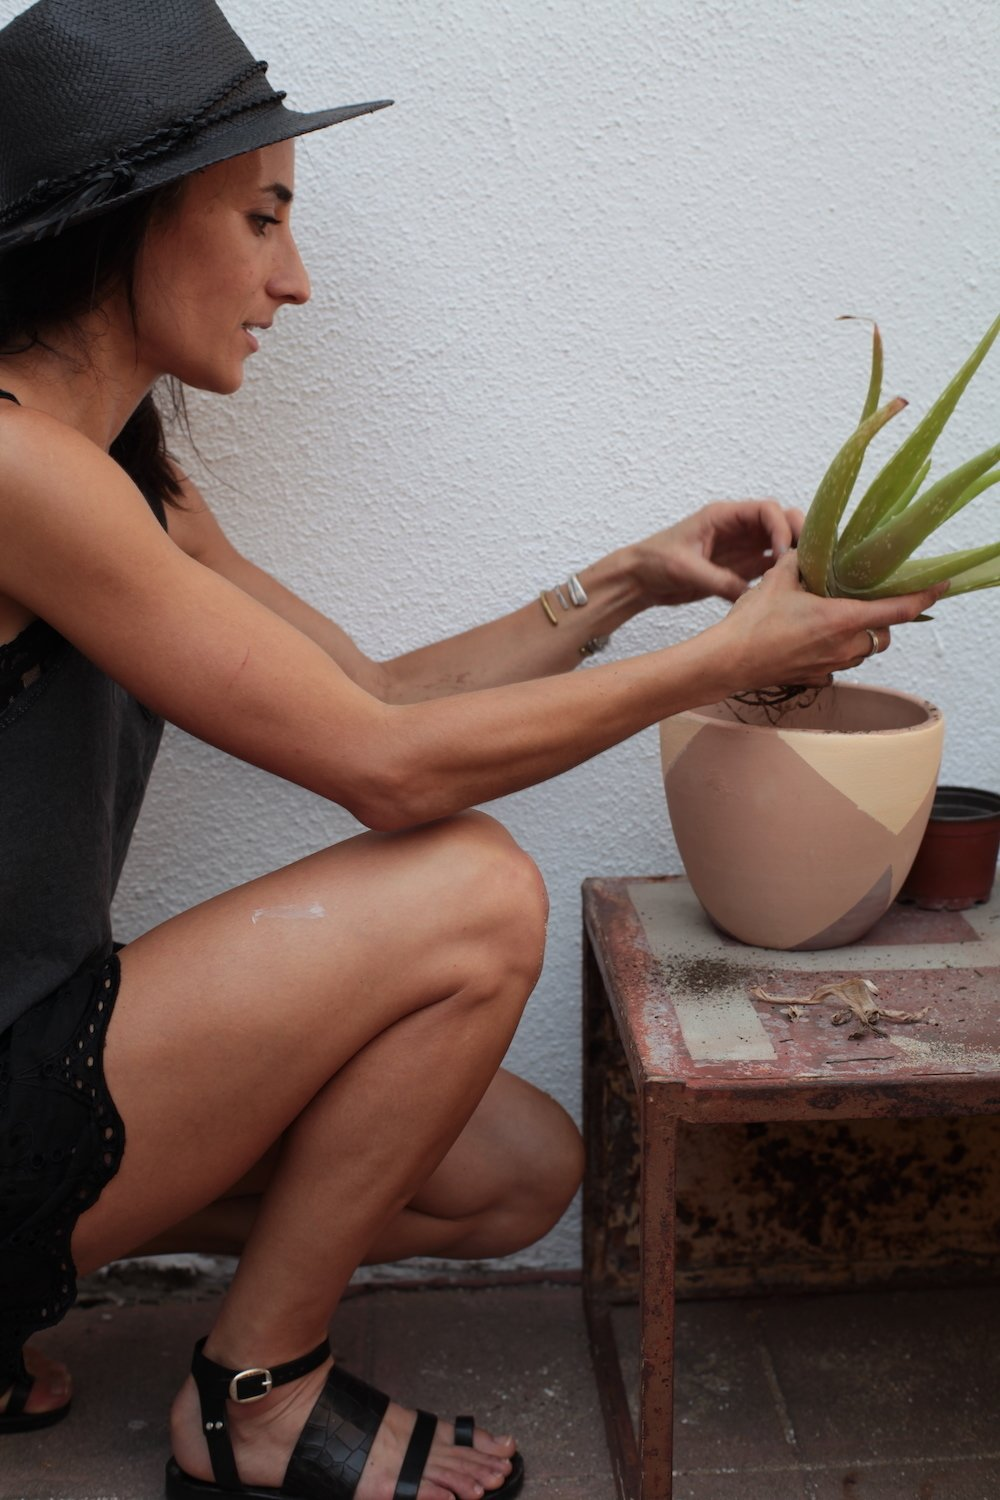 Photo 7 of 7 in Put a Plant on It | DIY Painted Terra Cotta Pots